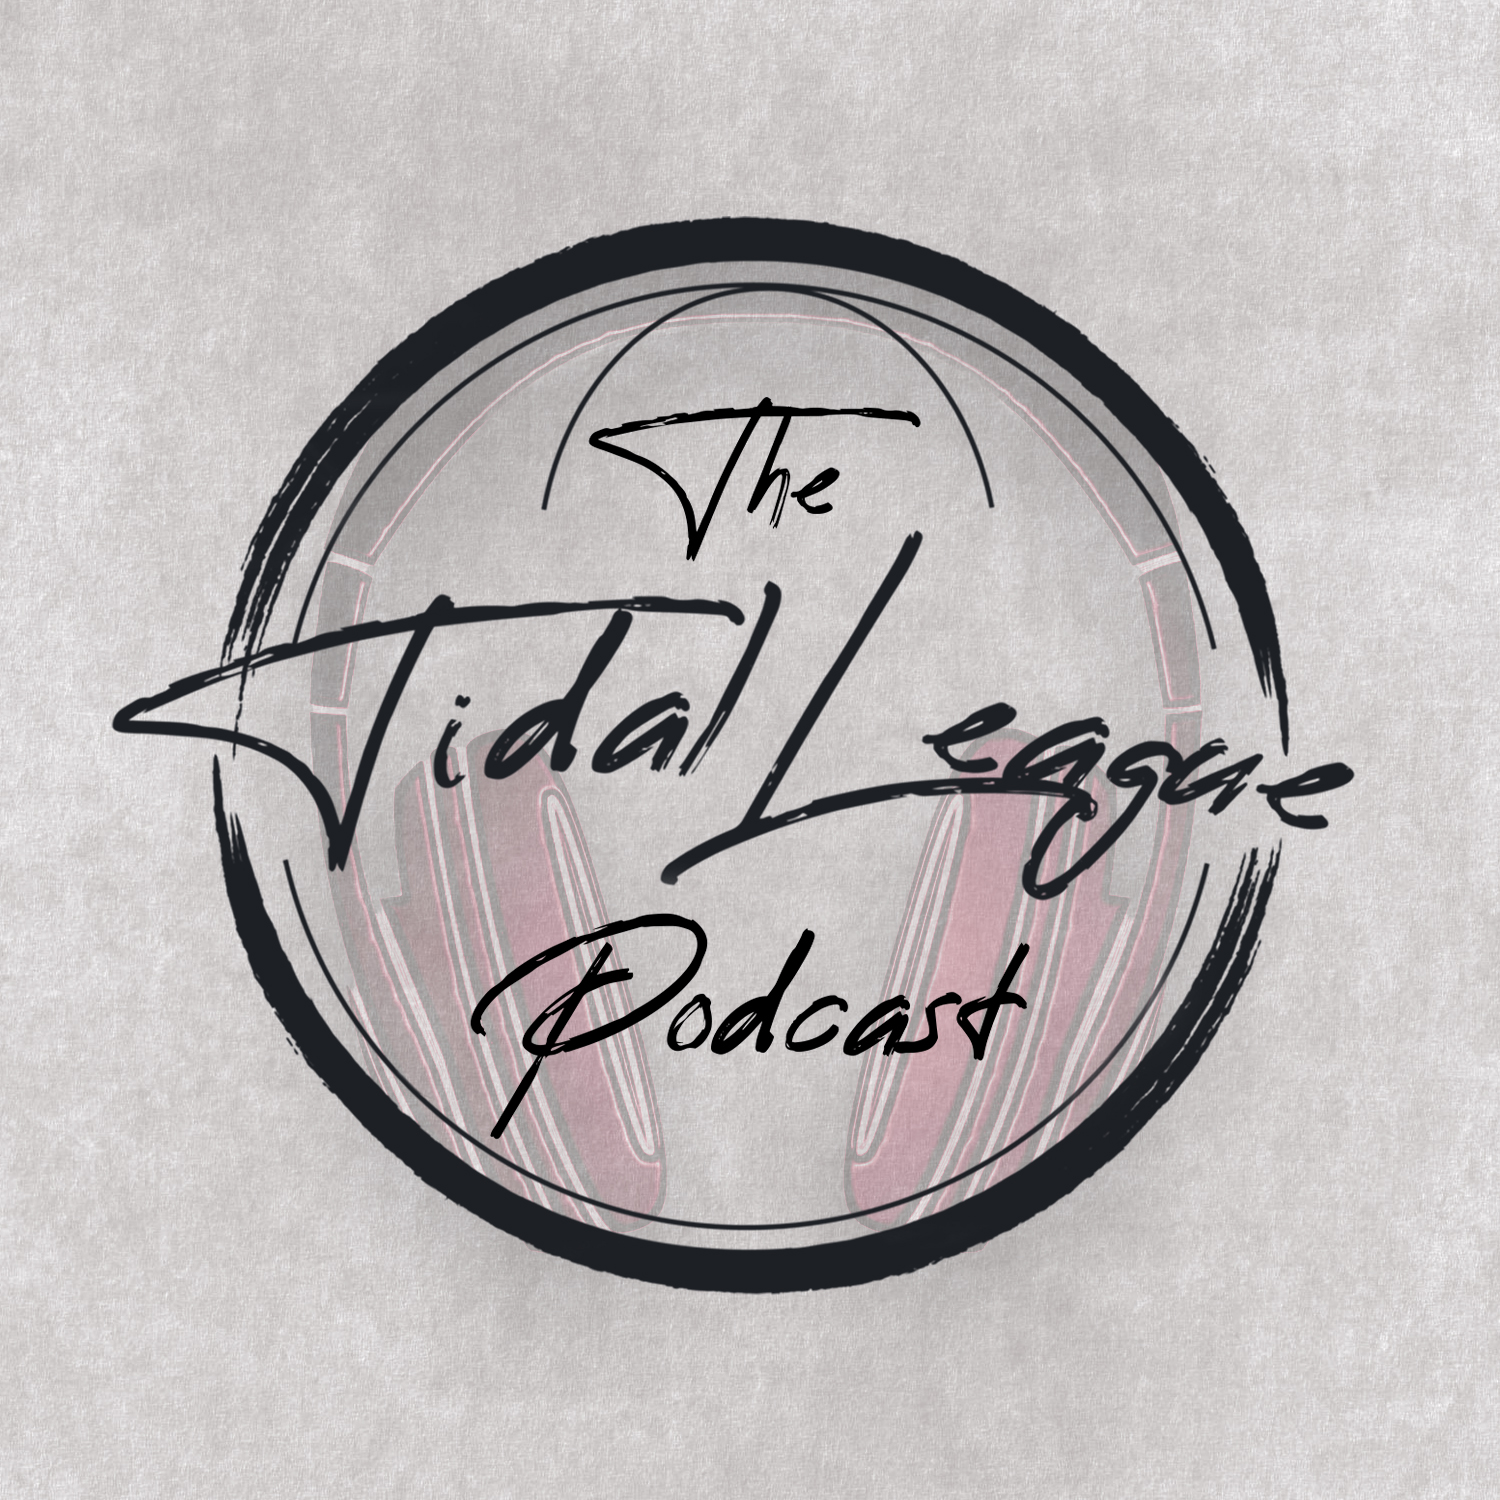 The Tidal League Podcast Newsletter Signup